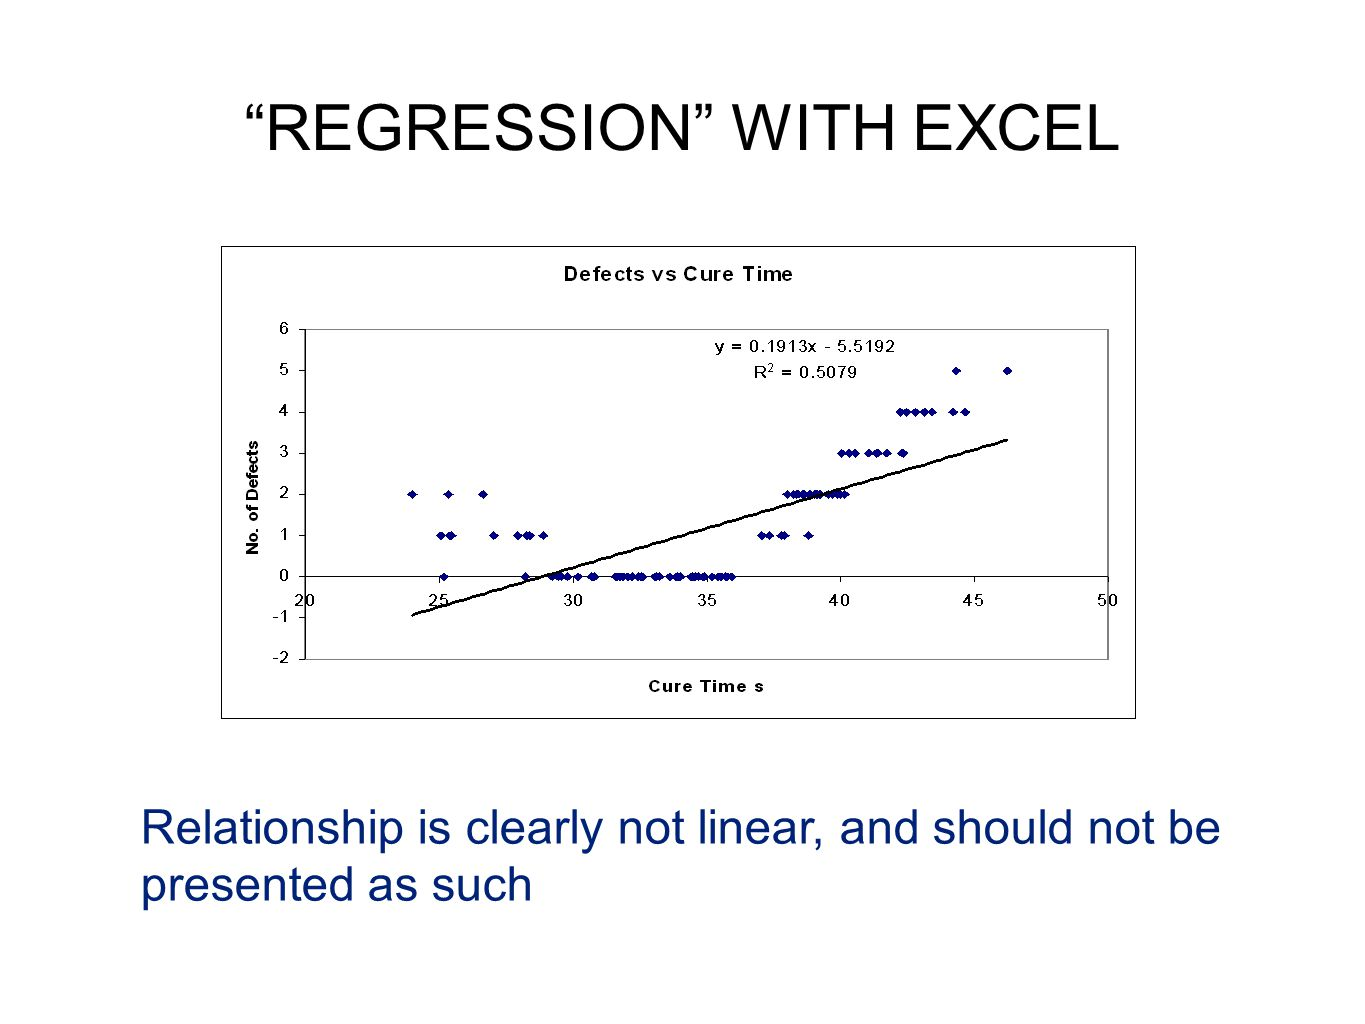 REGRESSION WITH EXCEL Relationship is clearly not linear, and should not be presented as such